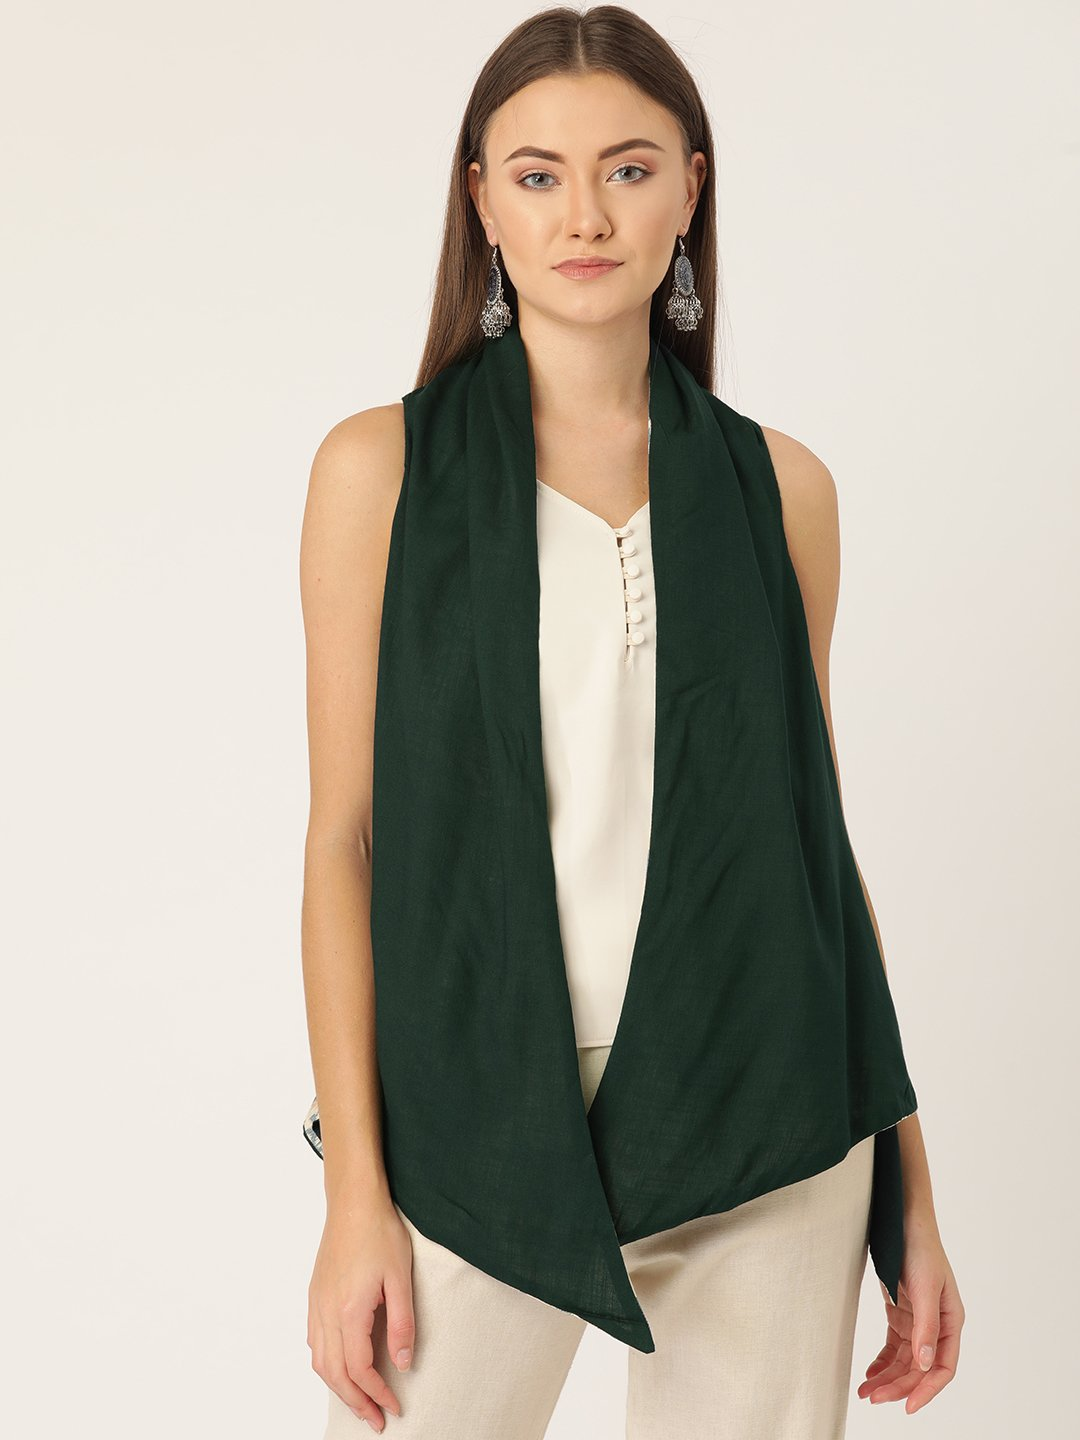 Reversible Shrug In Off White Ikkat Print & Green